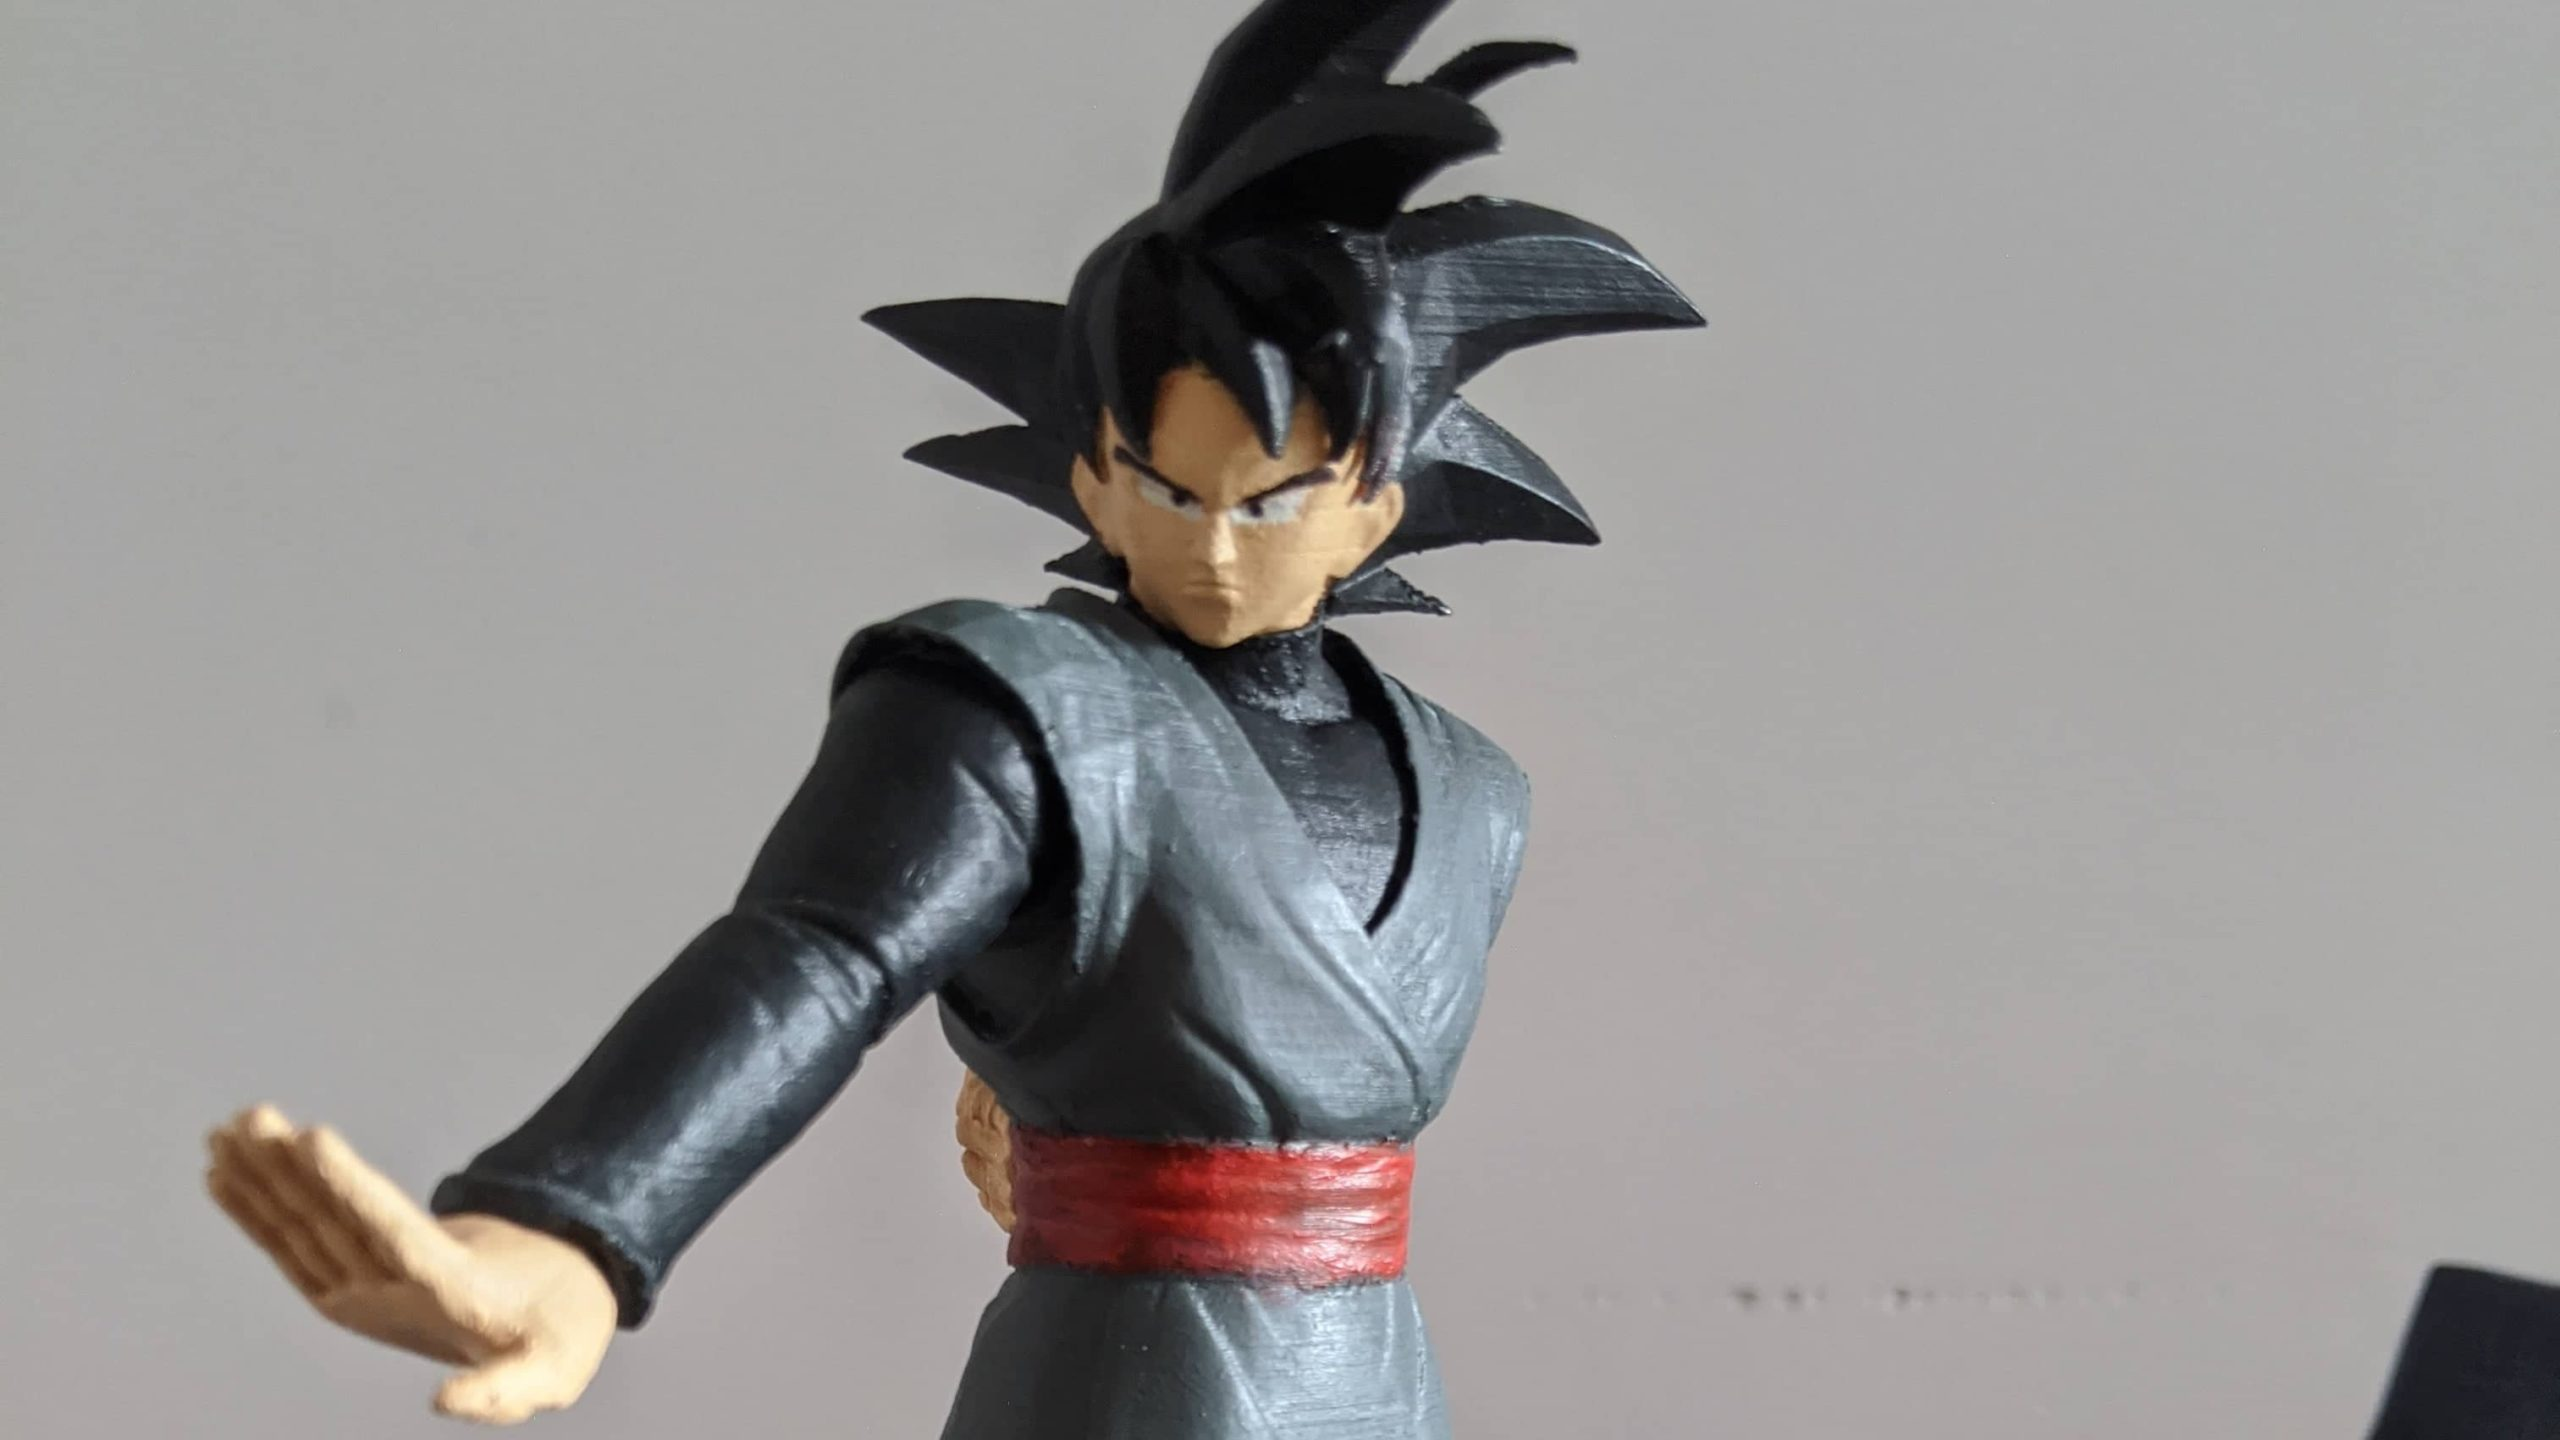 Dragon Ball (Z) 3D Print: 15+ Great Models for Goku Fans | All3DP